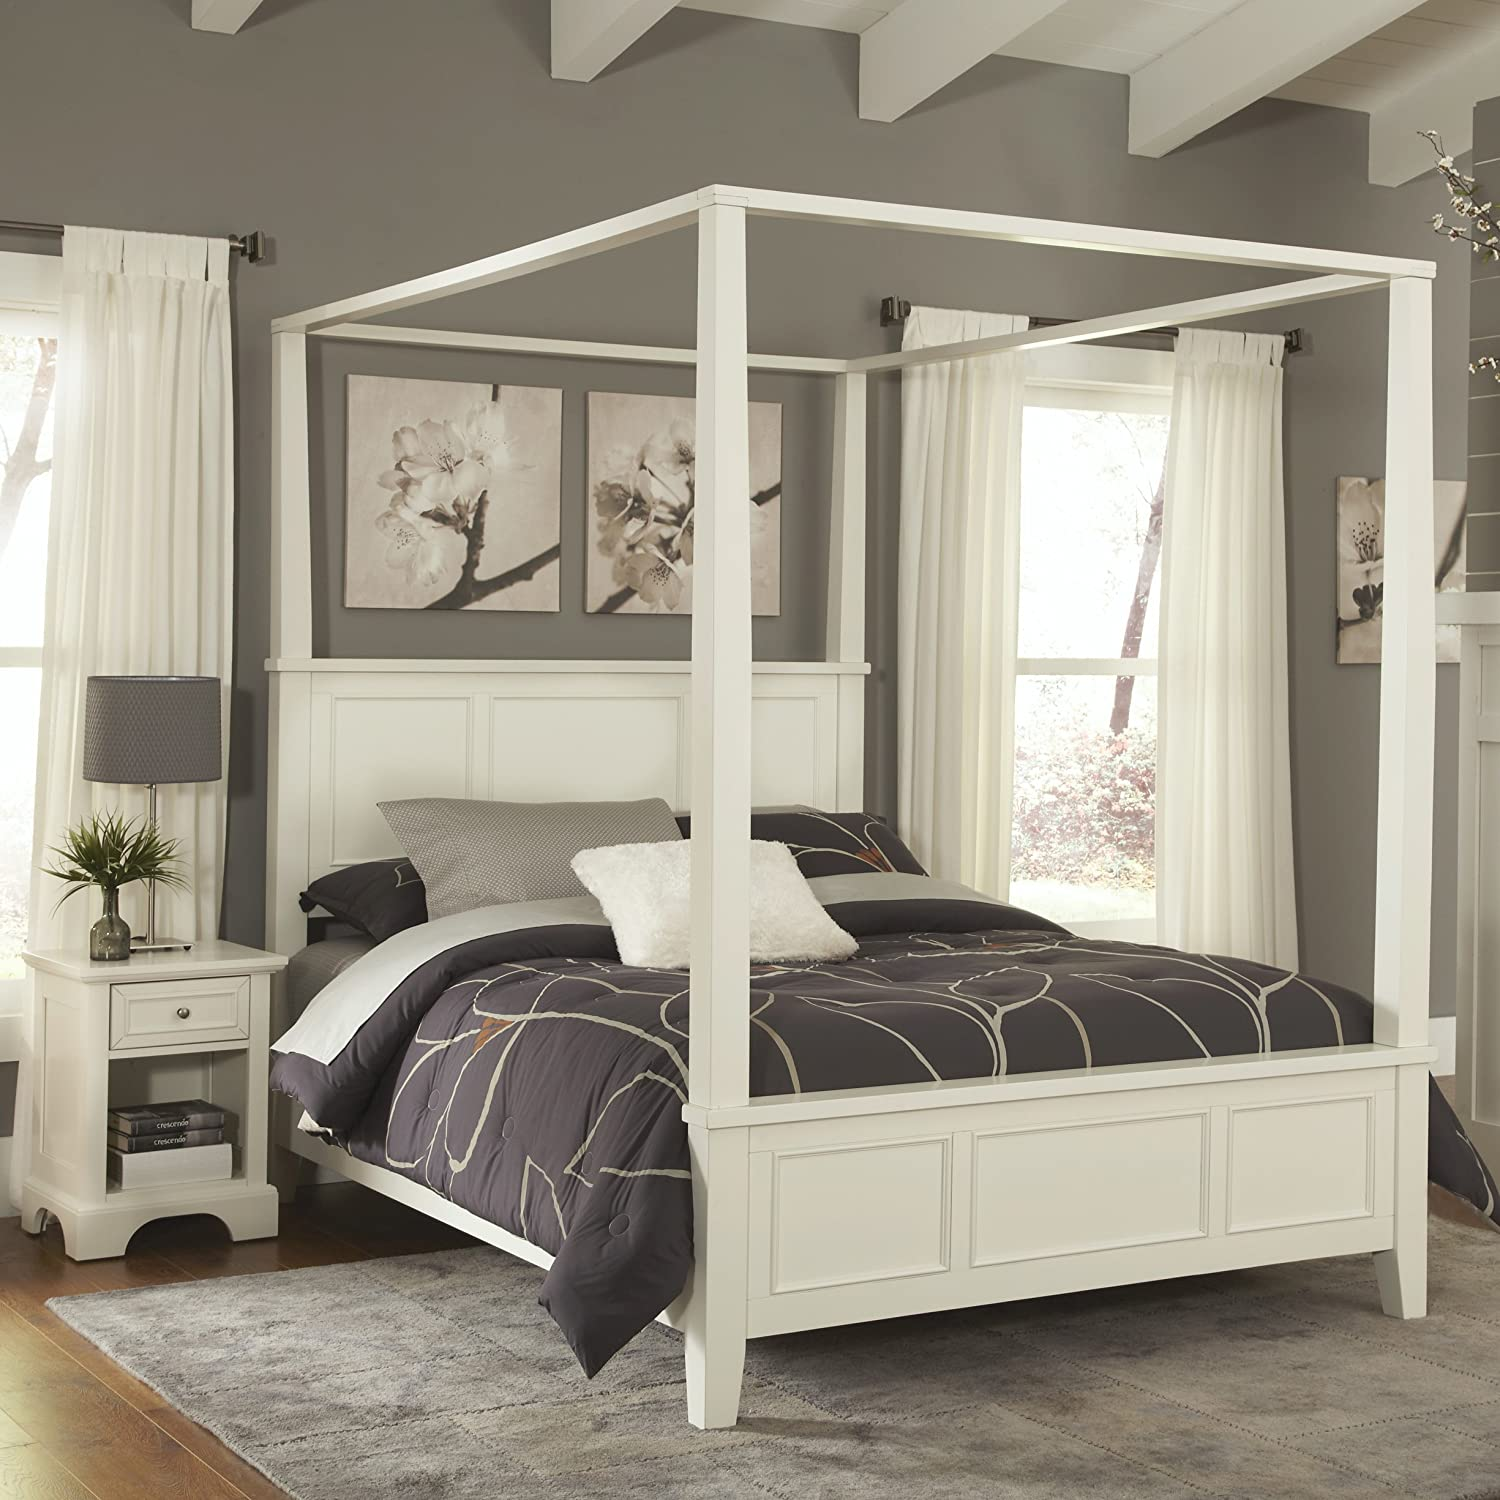 - Amazon.com: Naples White Queen Canopy Bed & Night Stand By Home